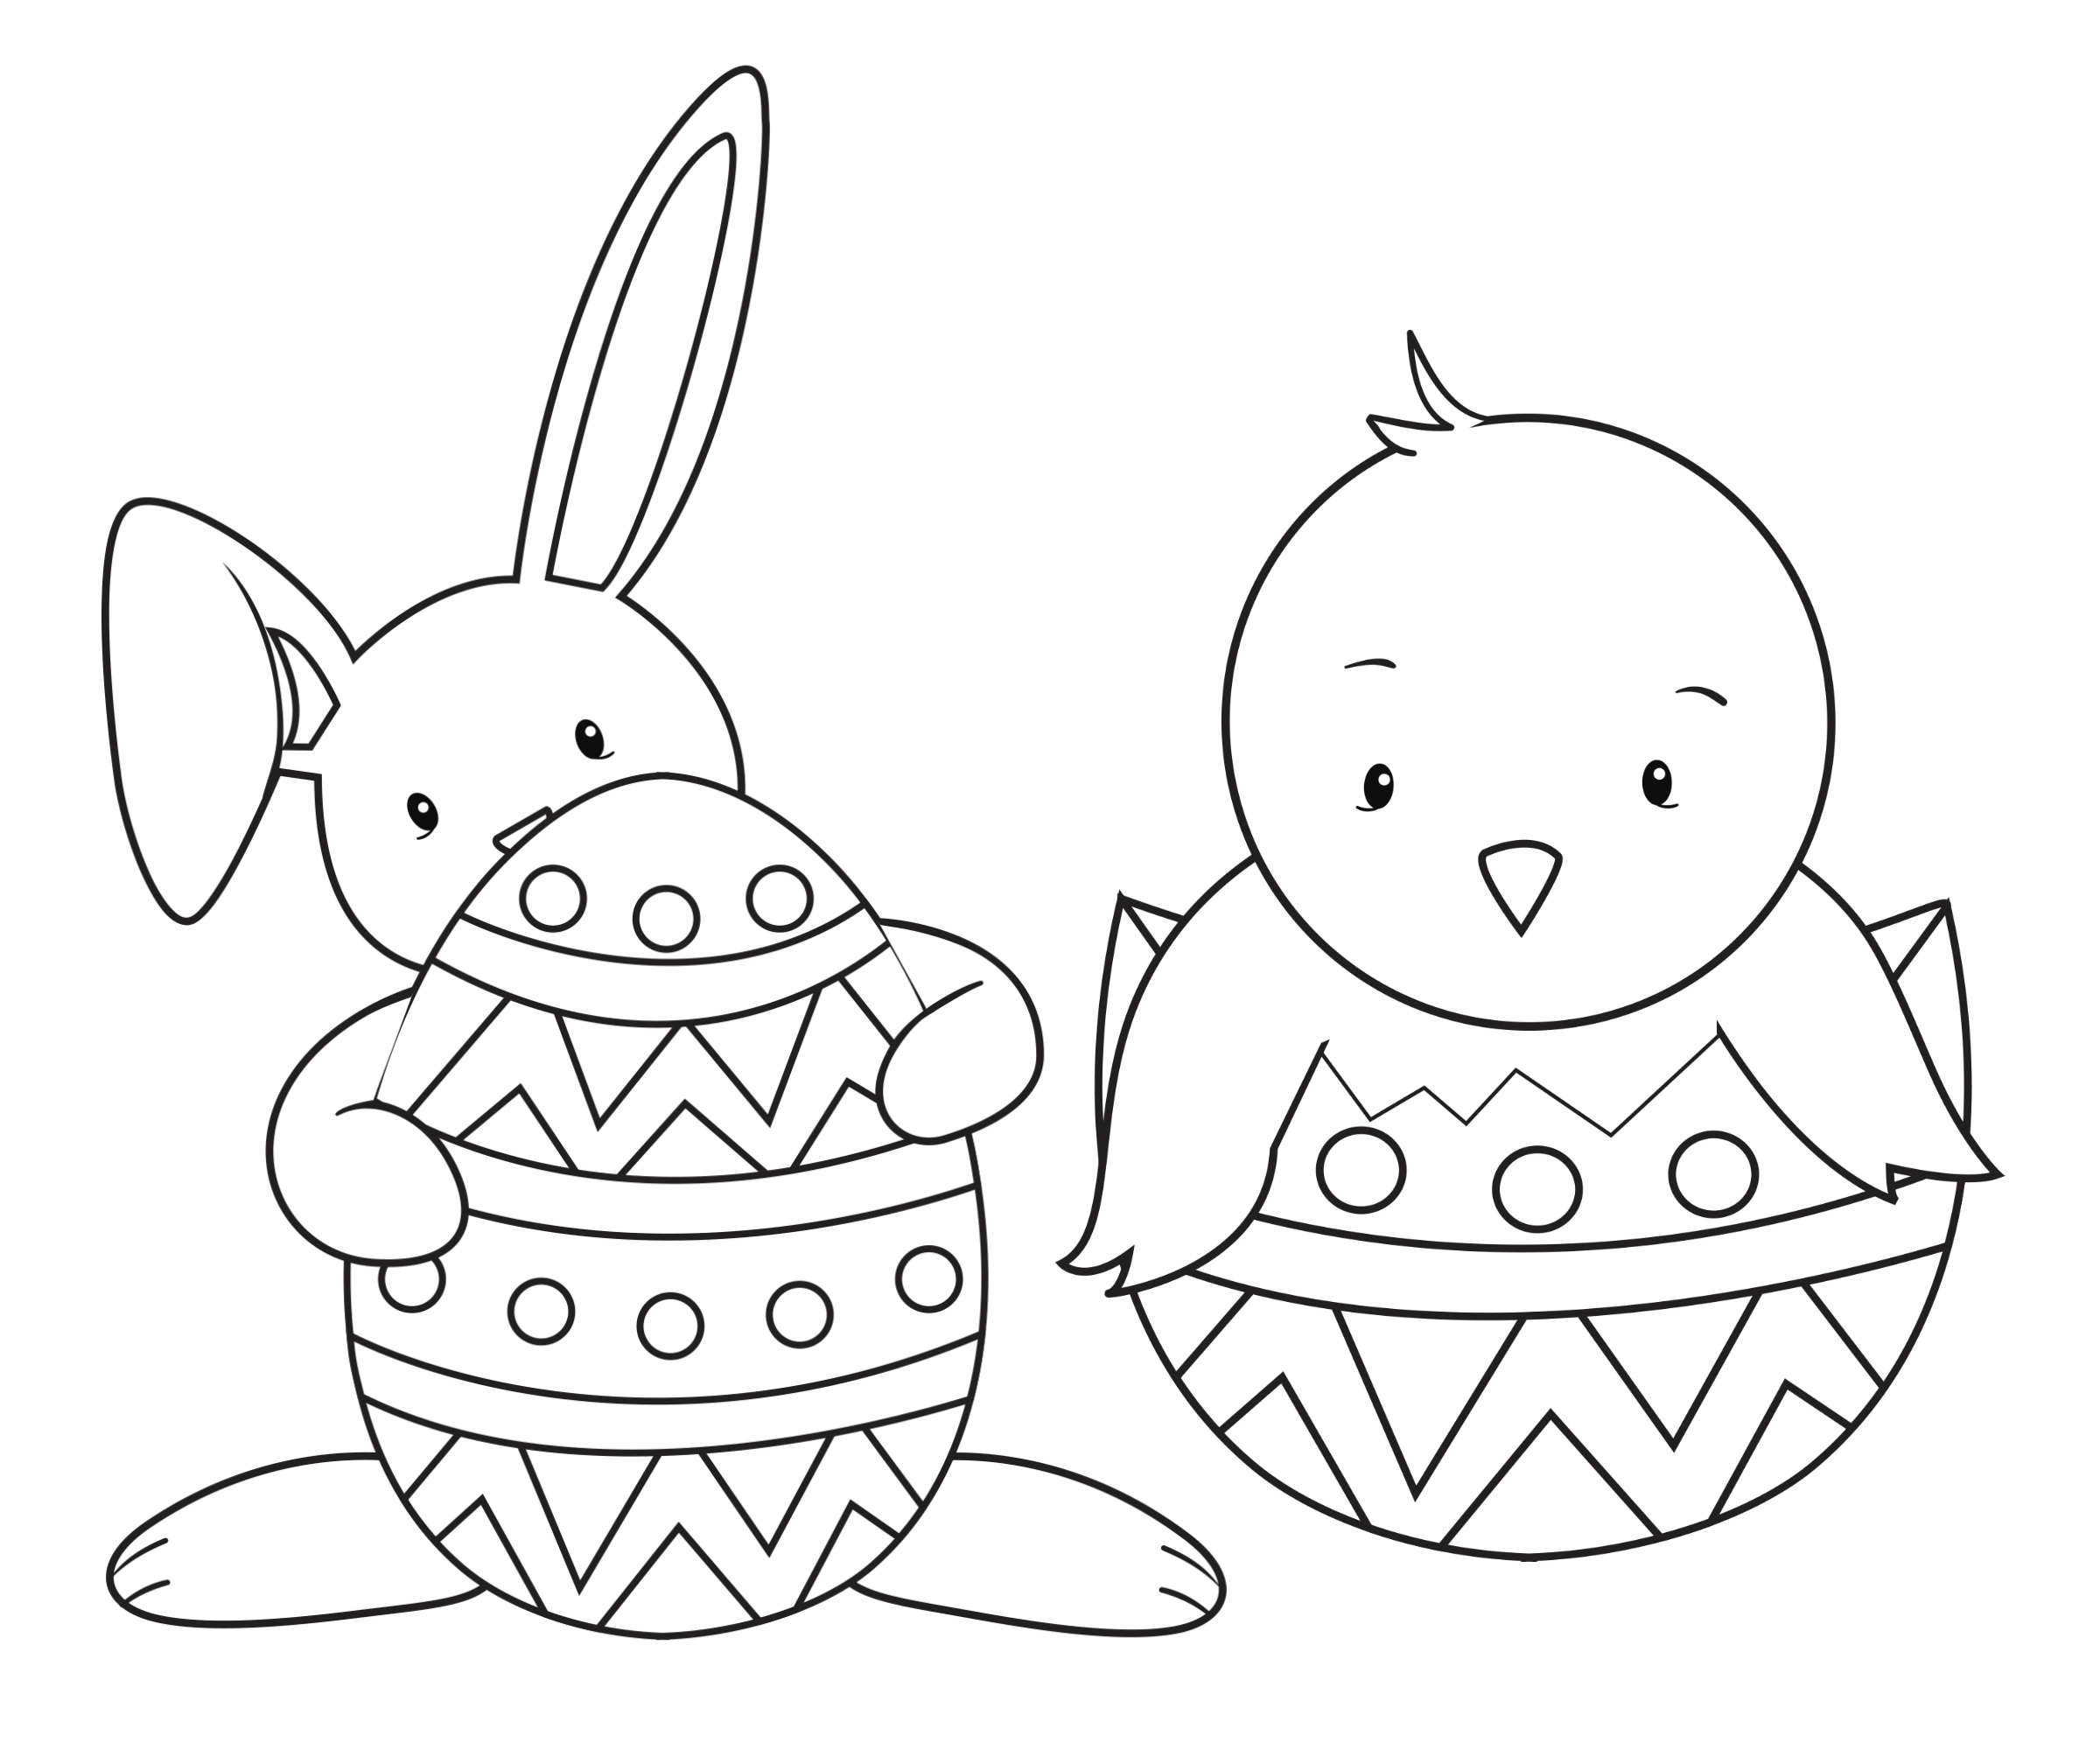 Easter Coloring Pages for Kids - Crazy Little Projects